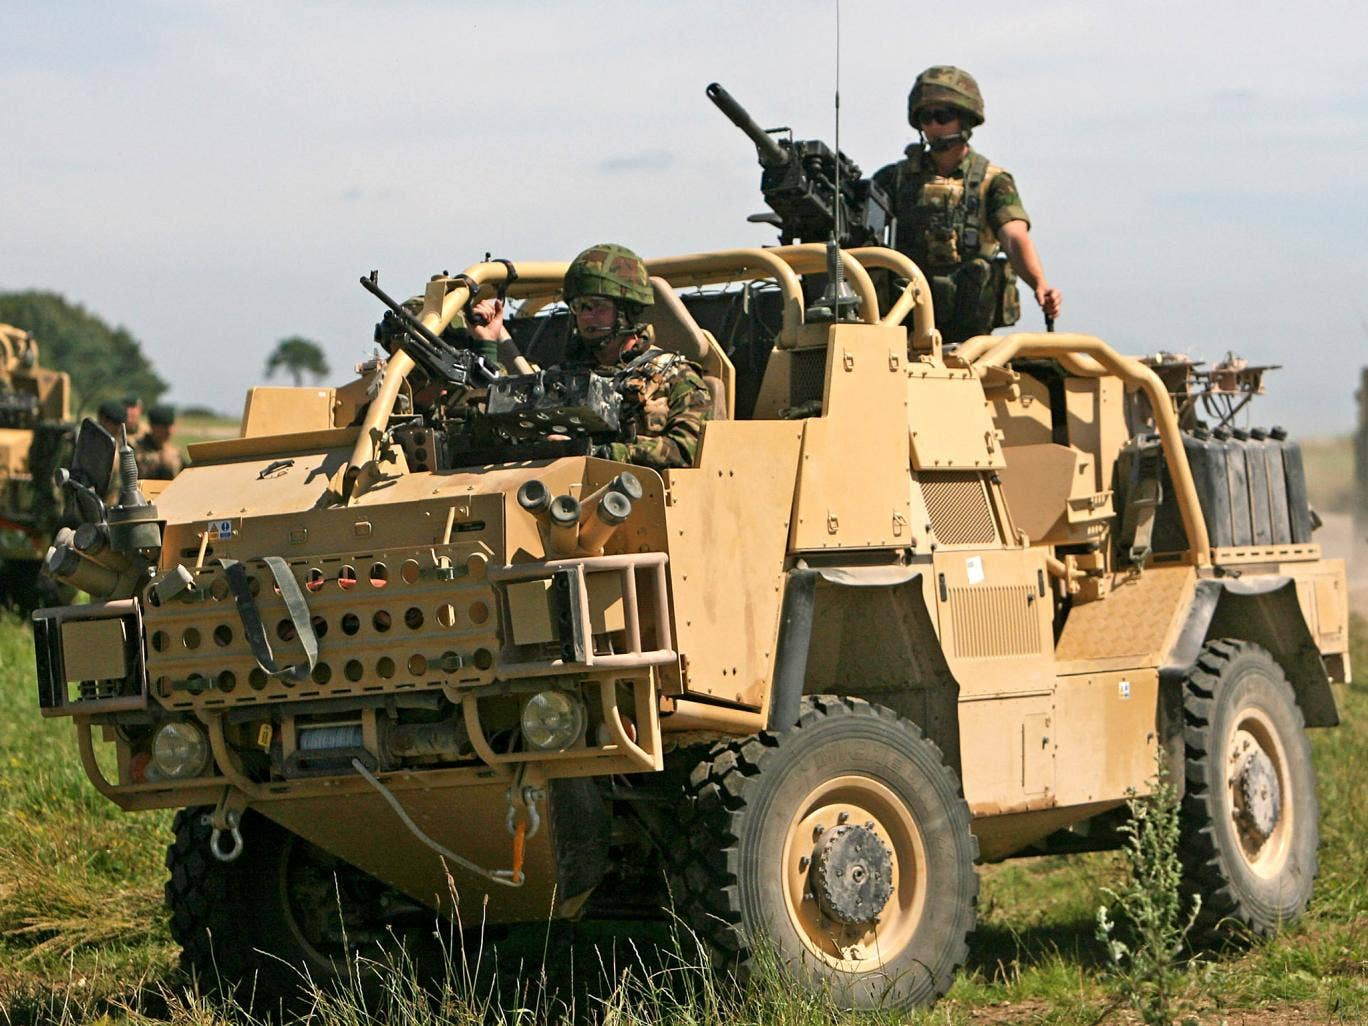 A Jackal armoured vehicle, which cost £350,000 each